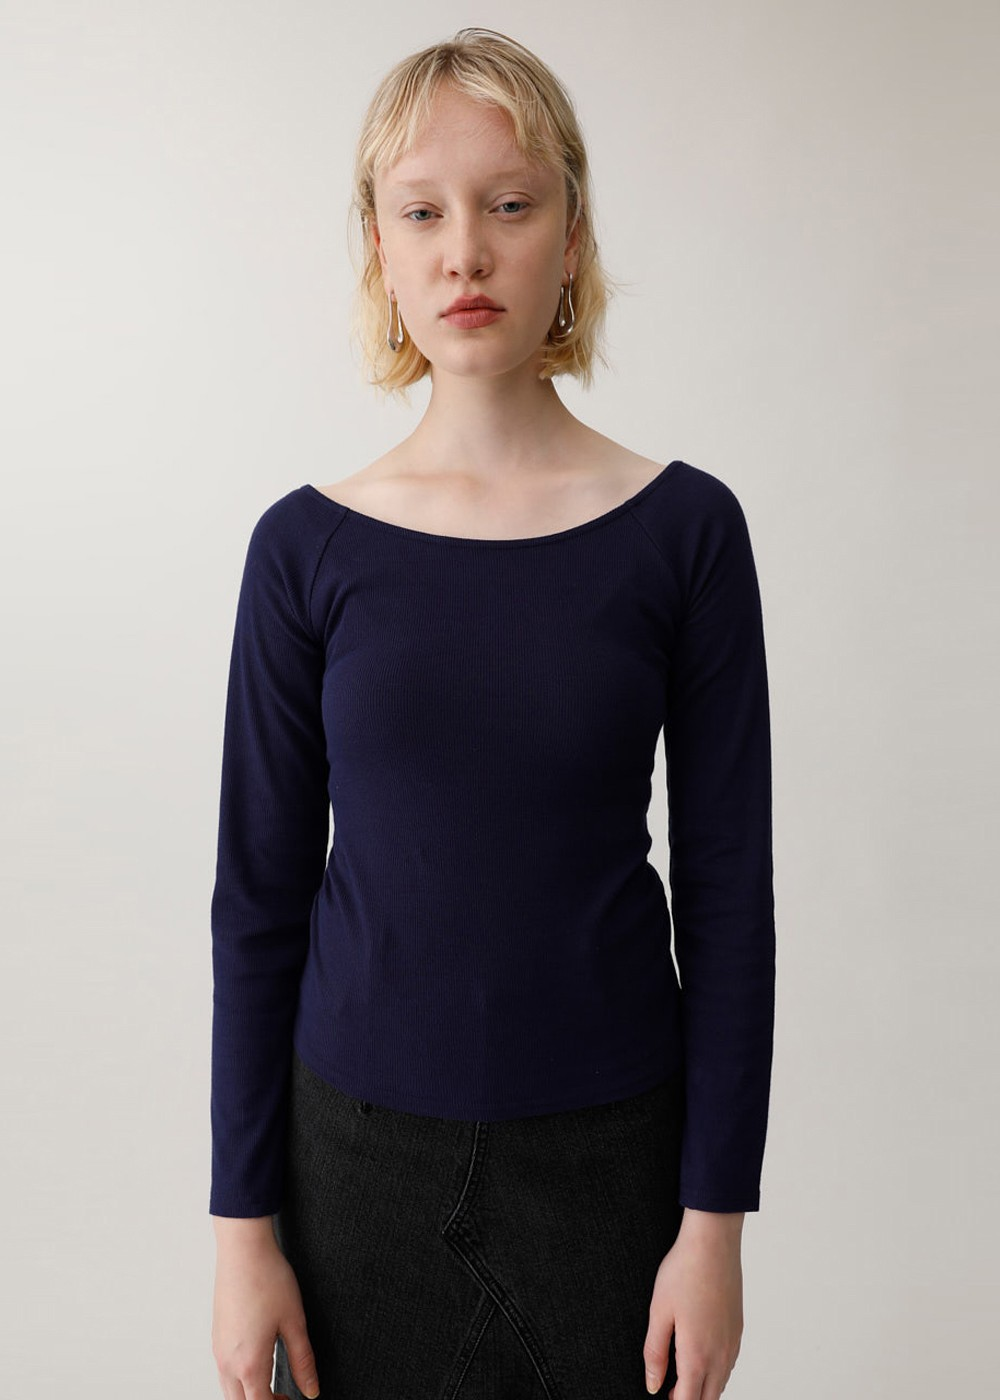 【最大60%OFF】BACK DRAPE CROSS TOP|NVY|カットソー|MOUSSY